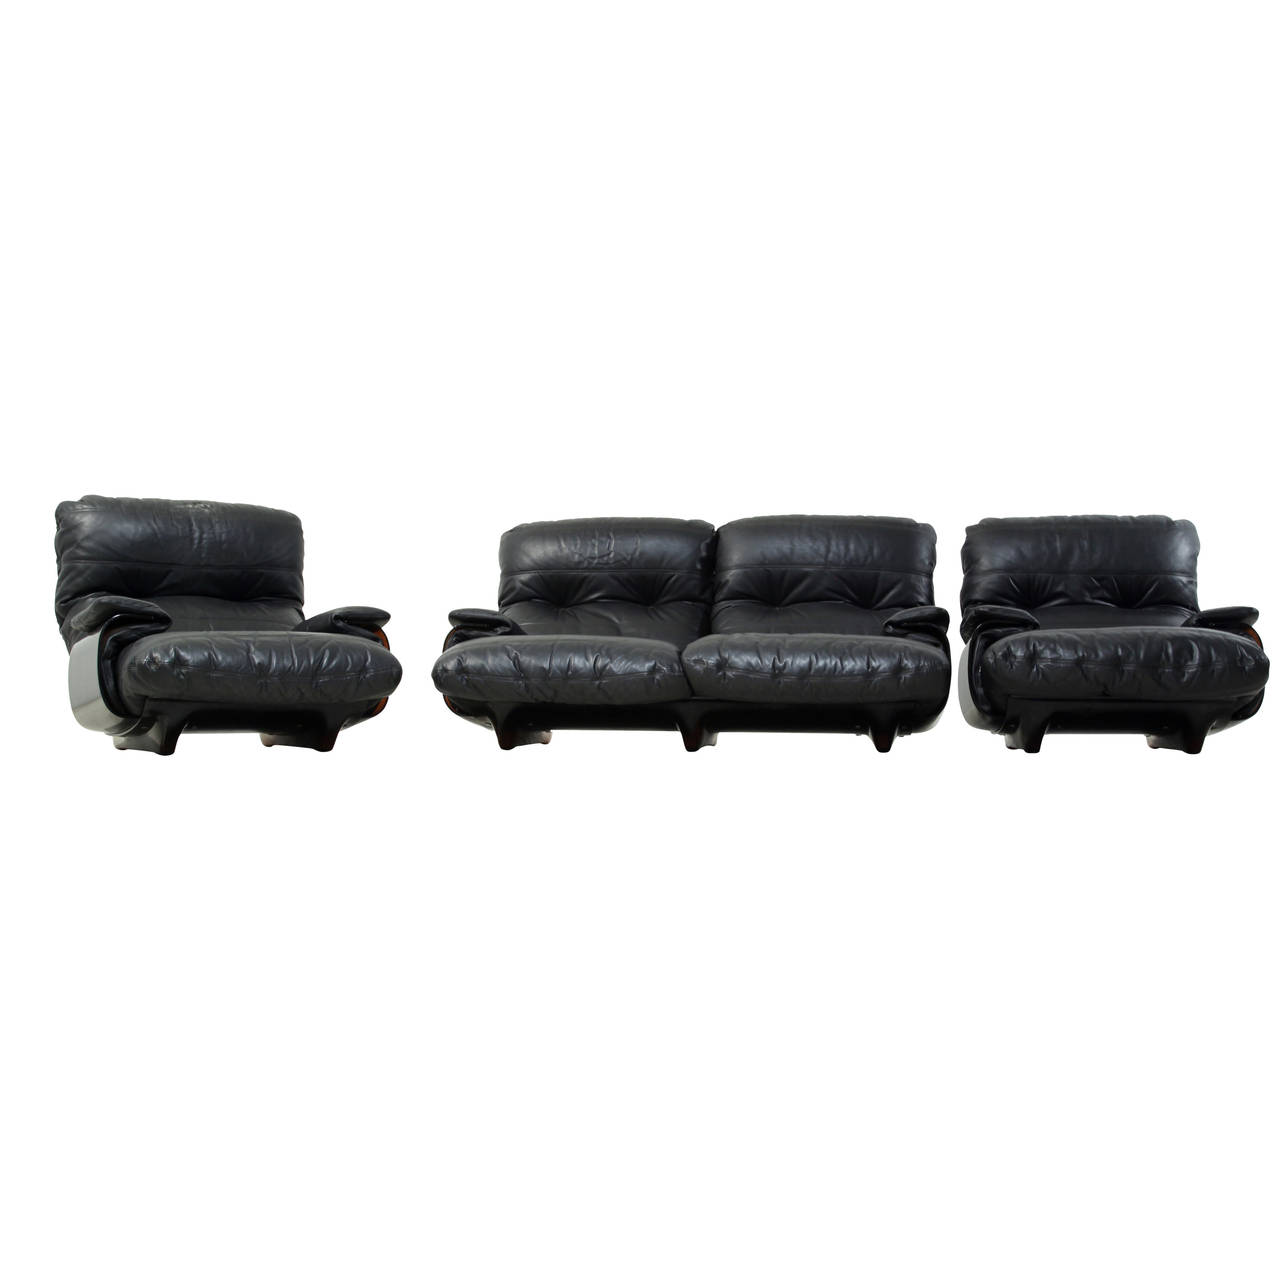 Ducaroy Ligne Roset Sofa Set in Brown Perspex with Black Leather